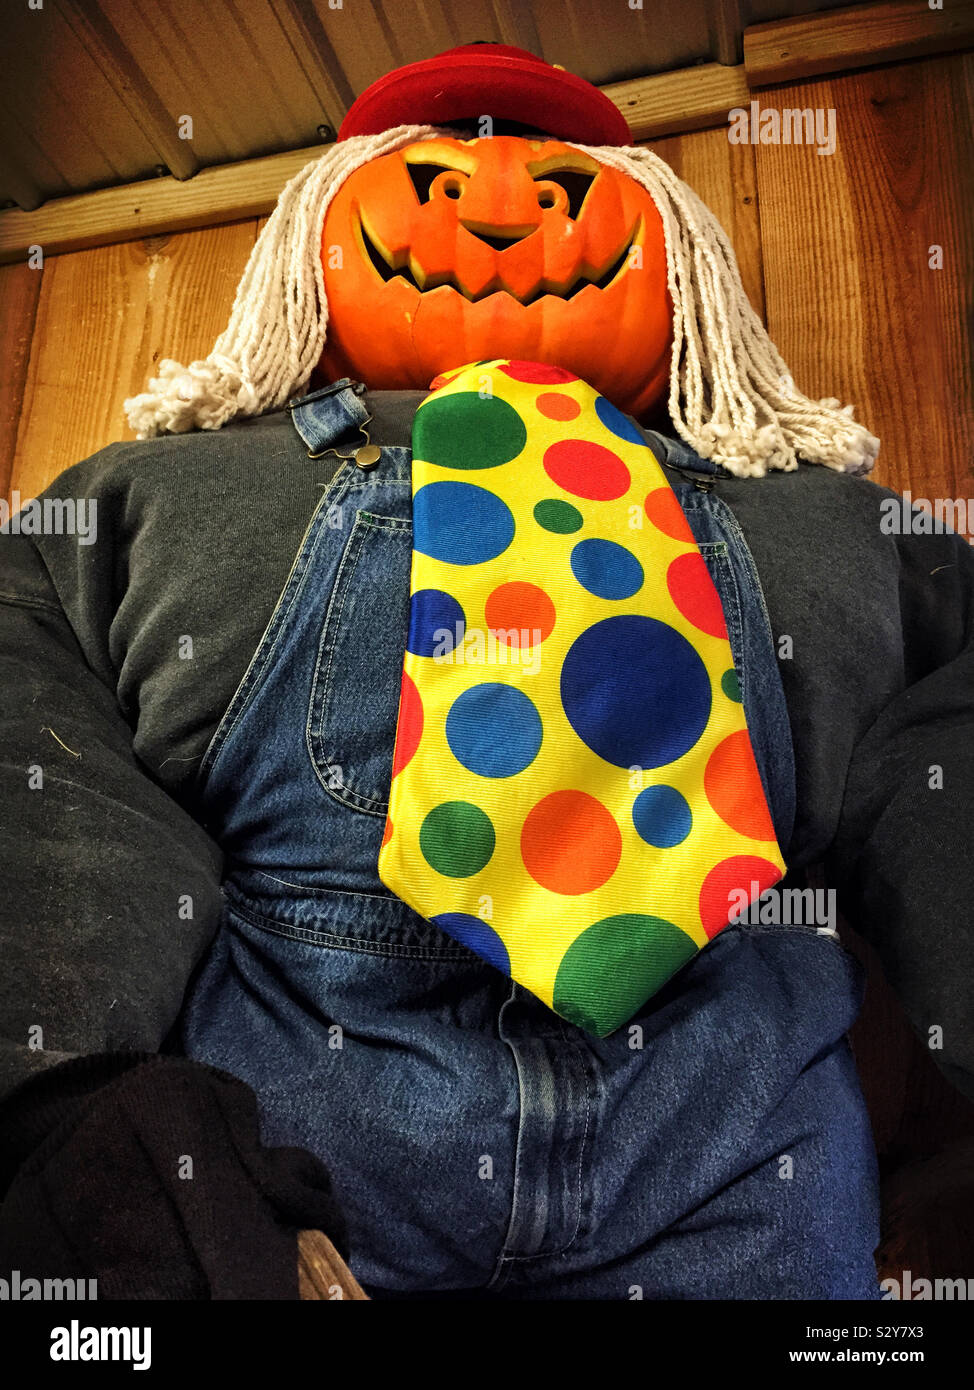 Halloween scarecrow with a carved smiling pumpkin head and a mop for his hair. He is wearing overalls and has a polka dot tie. Stock Photo